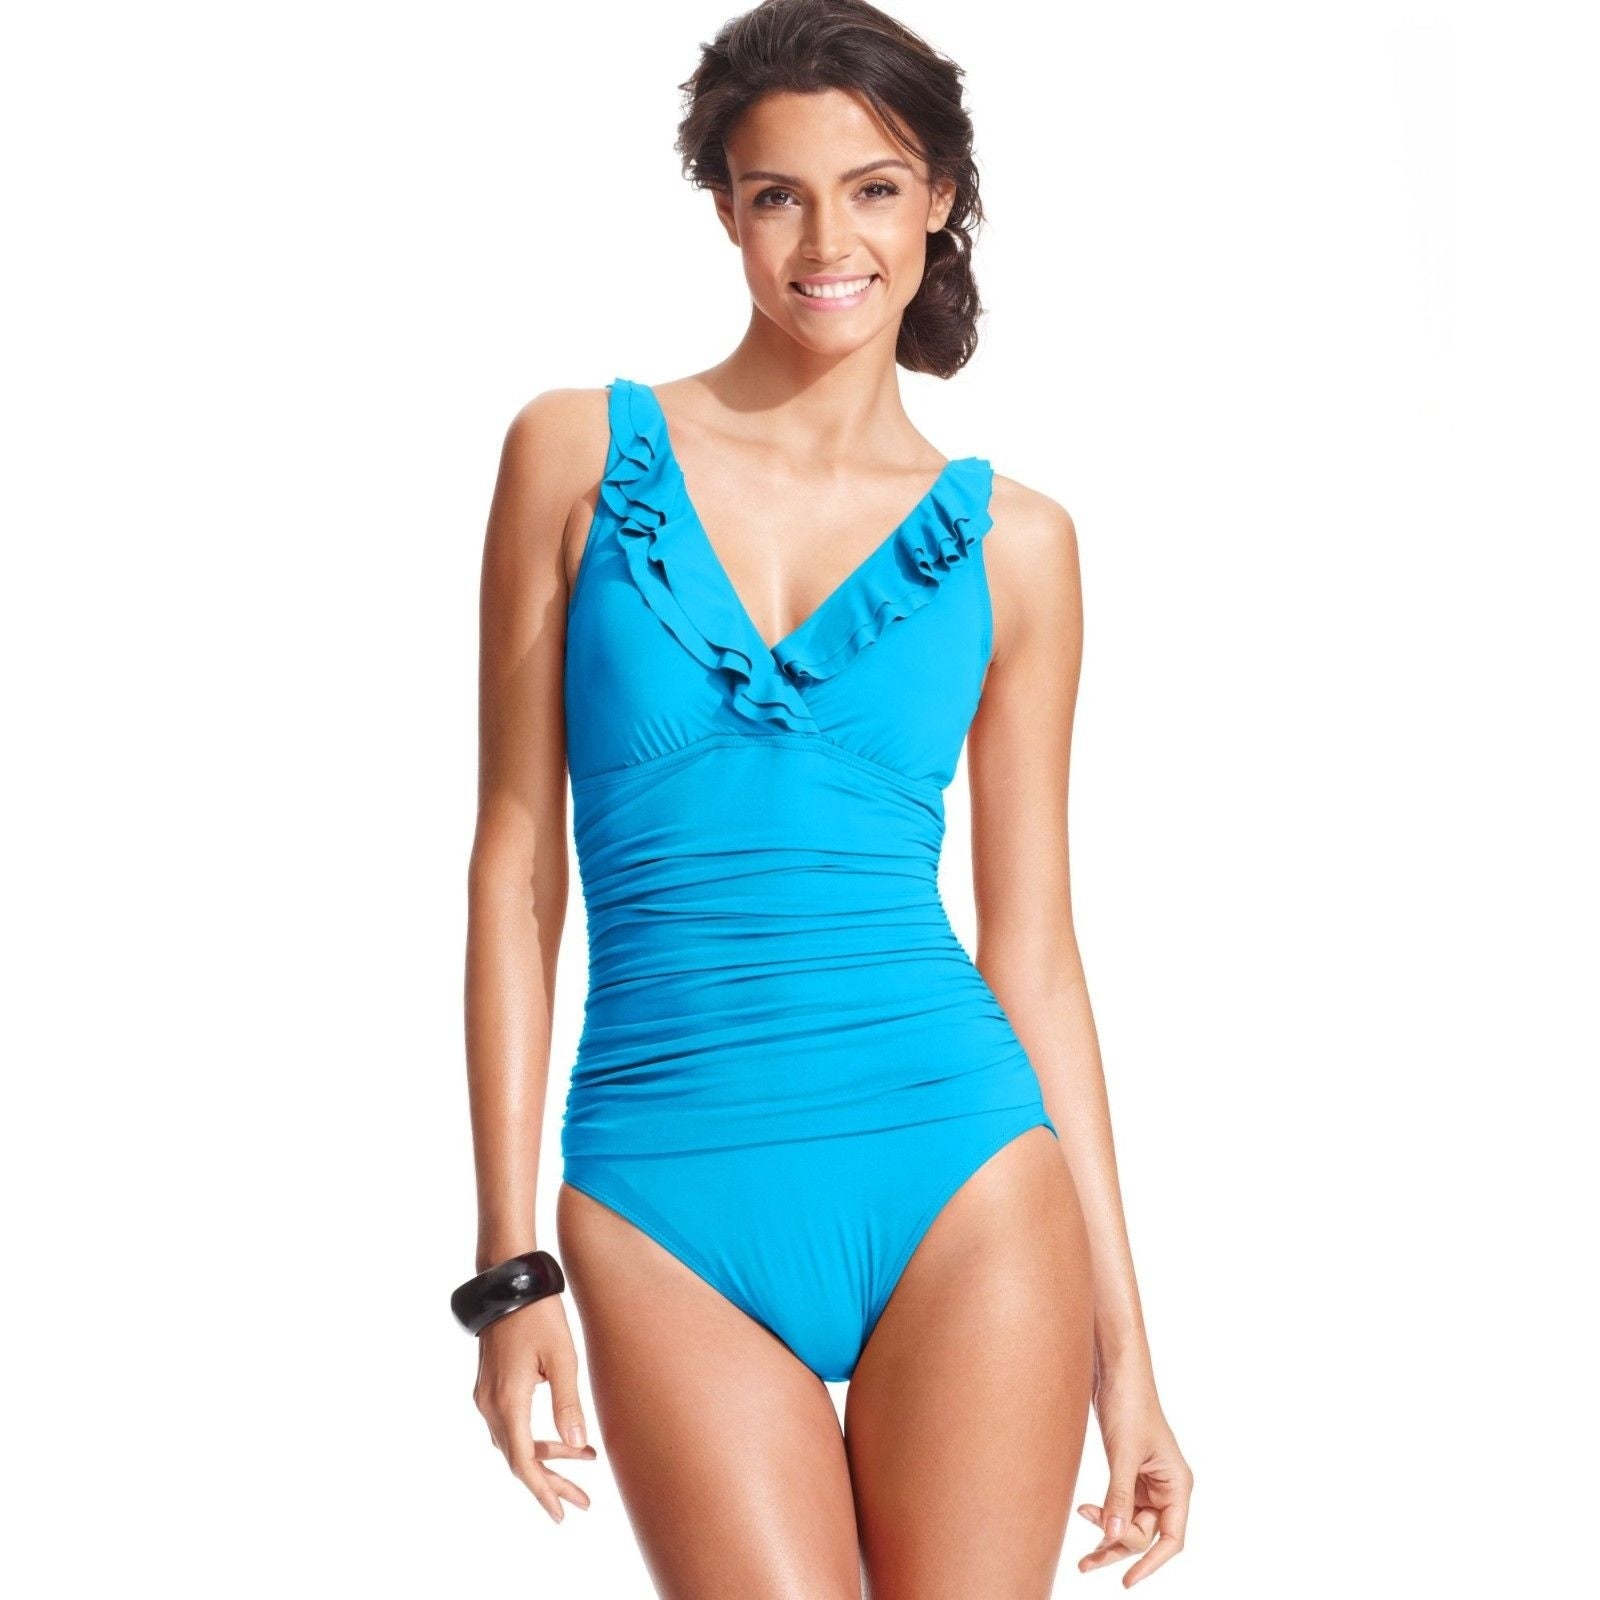 dcce210be11ceb Shop Lauren Ralph Lauren Tummy-Control Underwire Ruffled One-Piece TUR SIZE  14 - Free Shipping Today - Overstock - 27068923